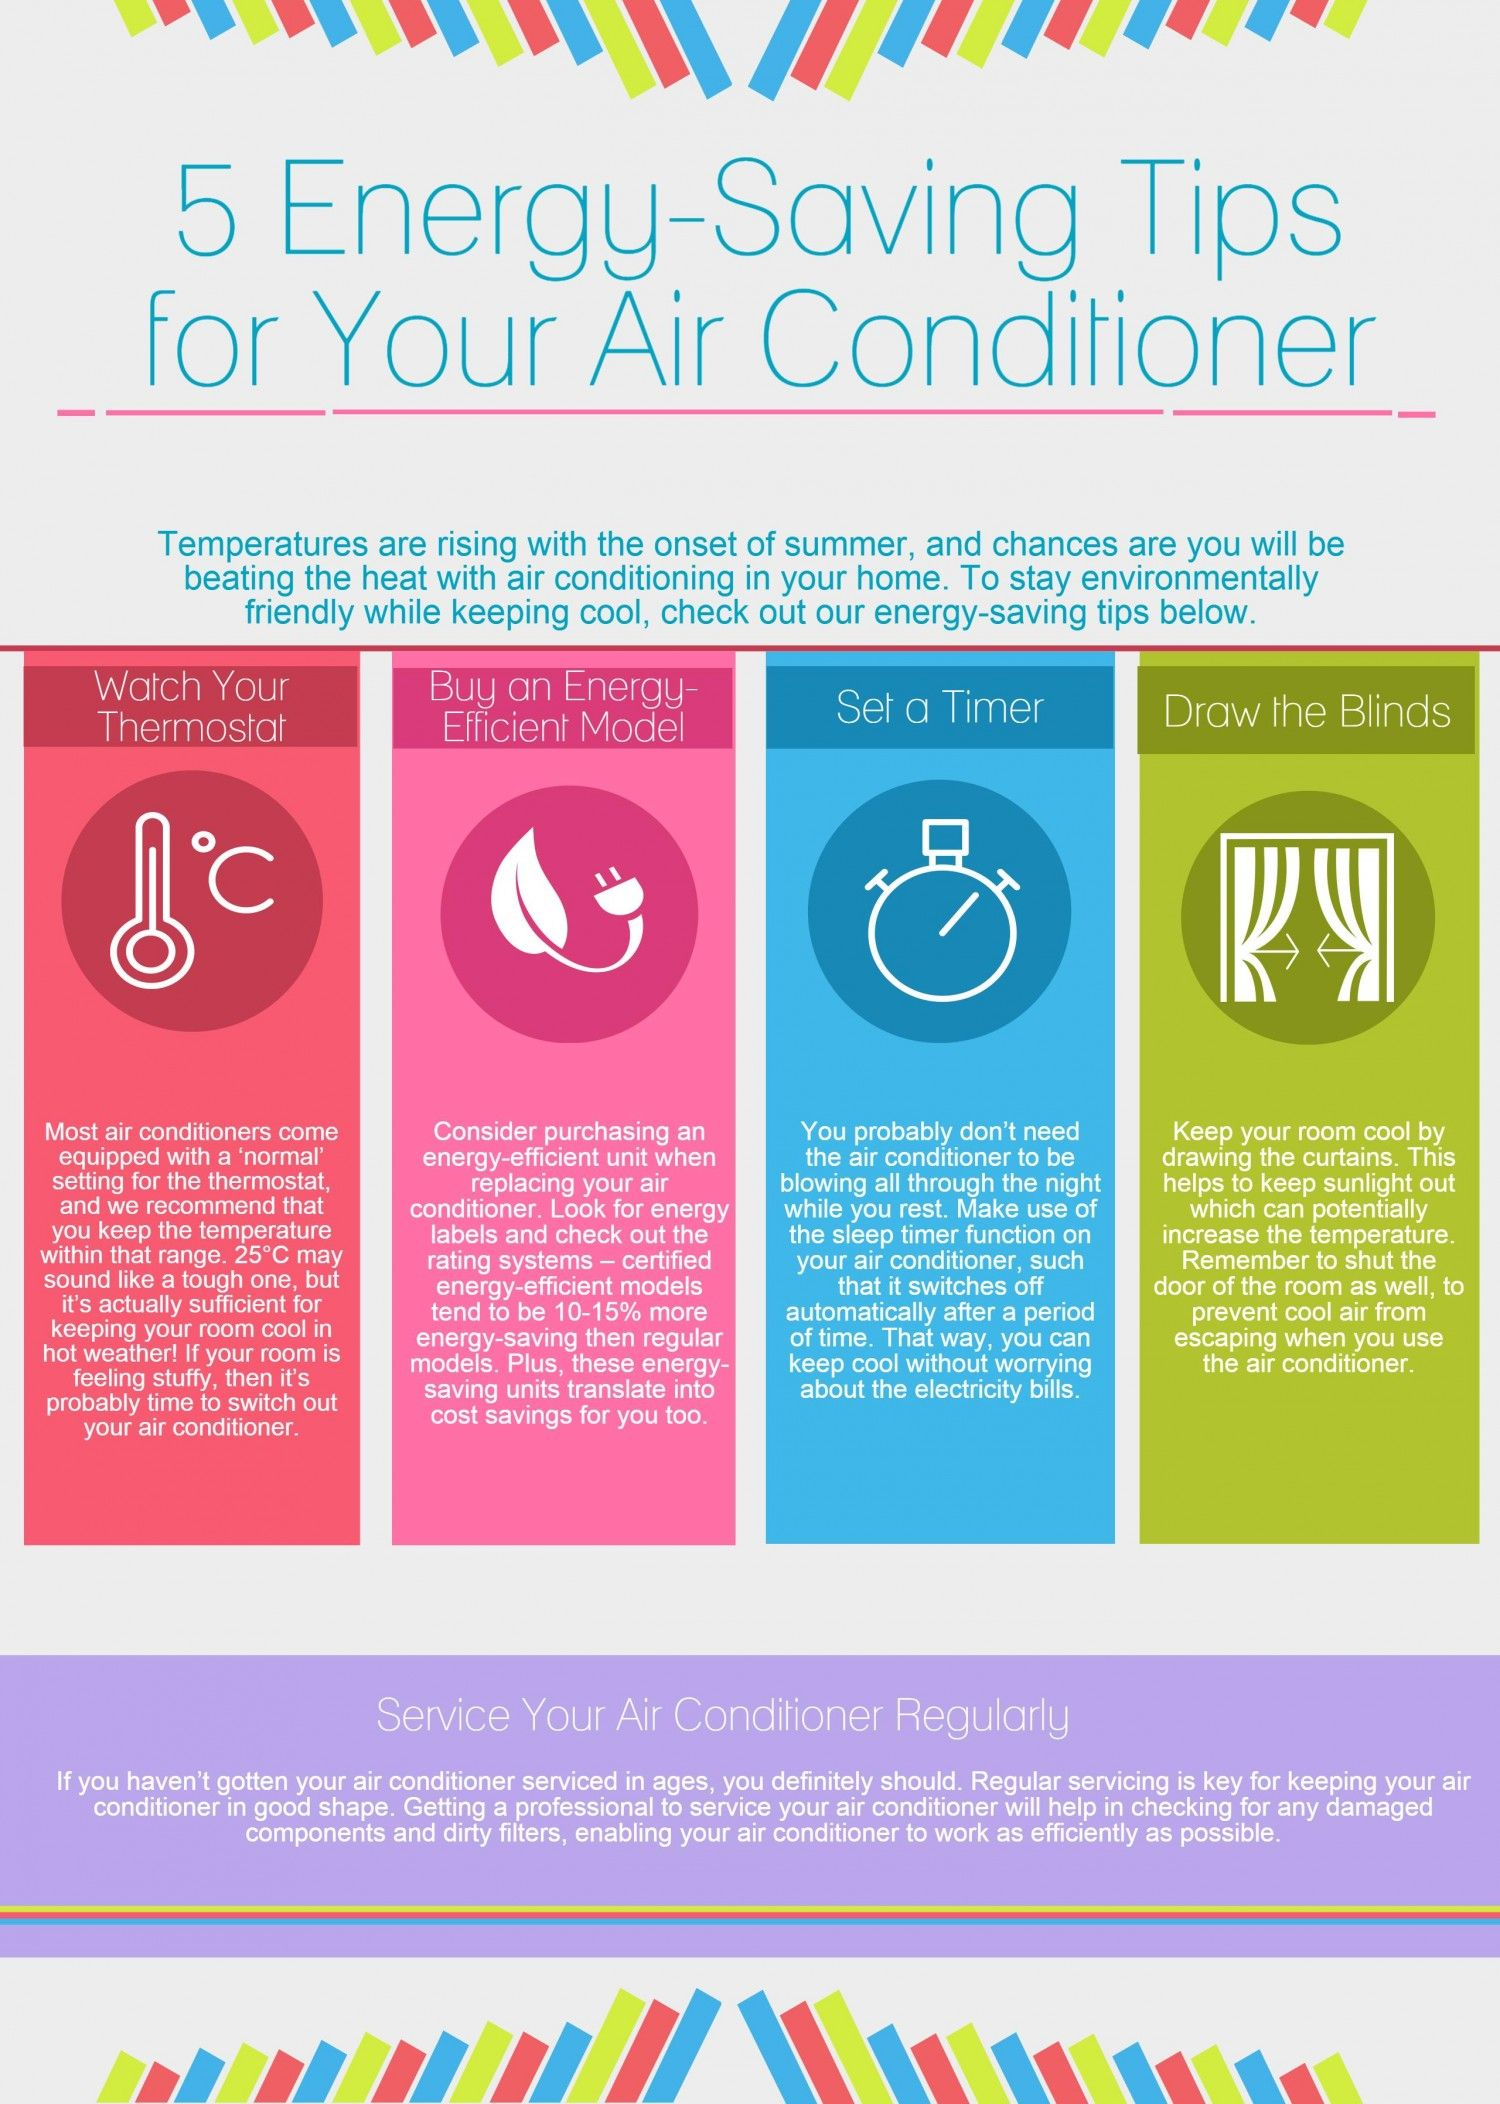 5 EnergySaving Tips for Your Air Conditioner Infographic